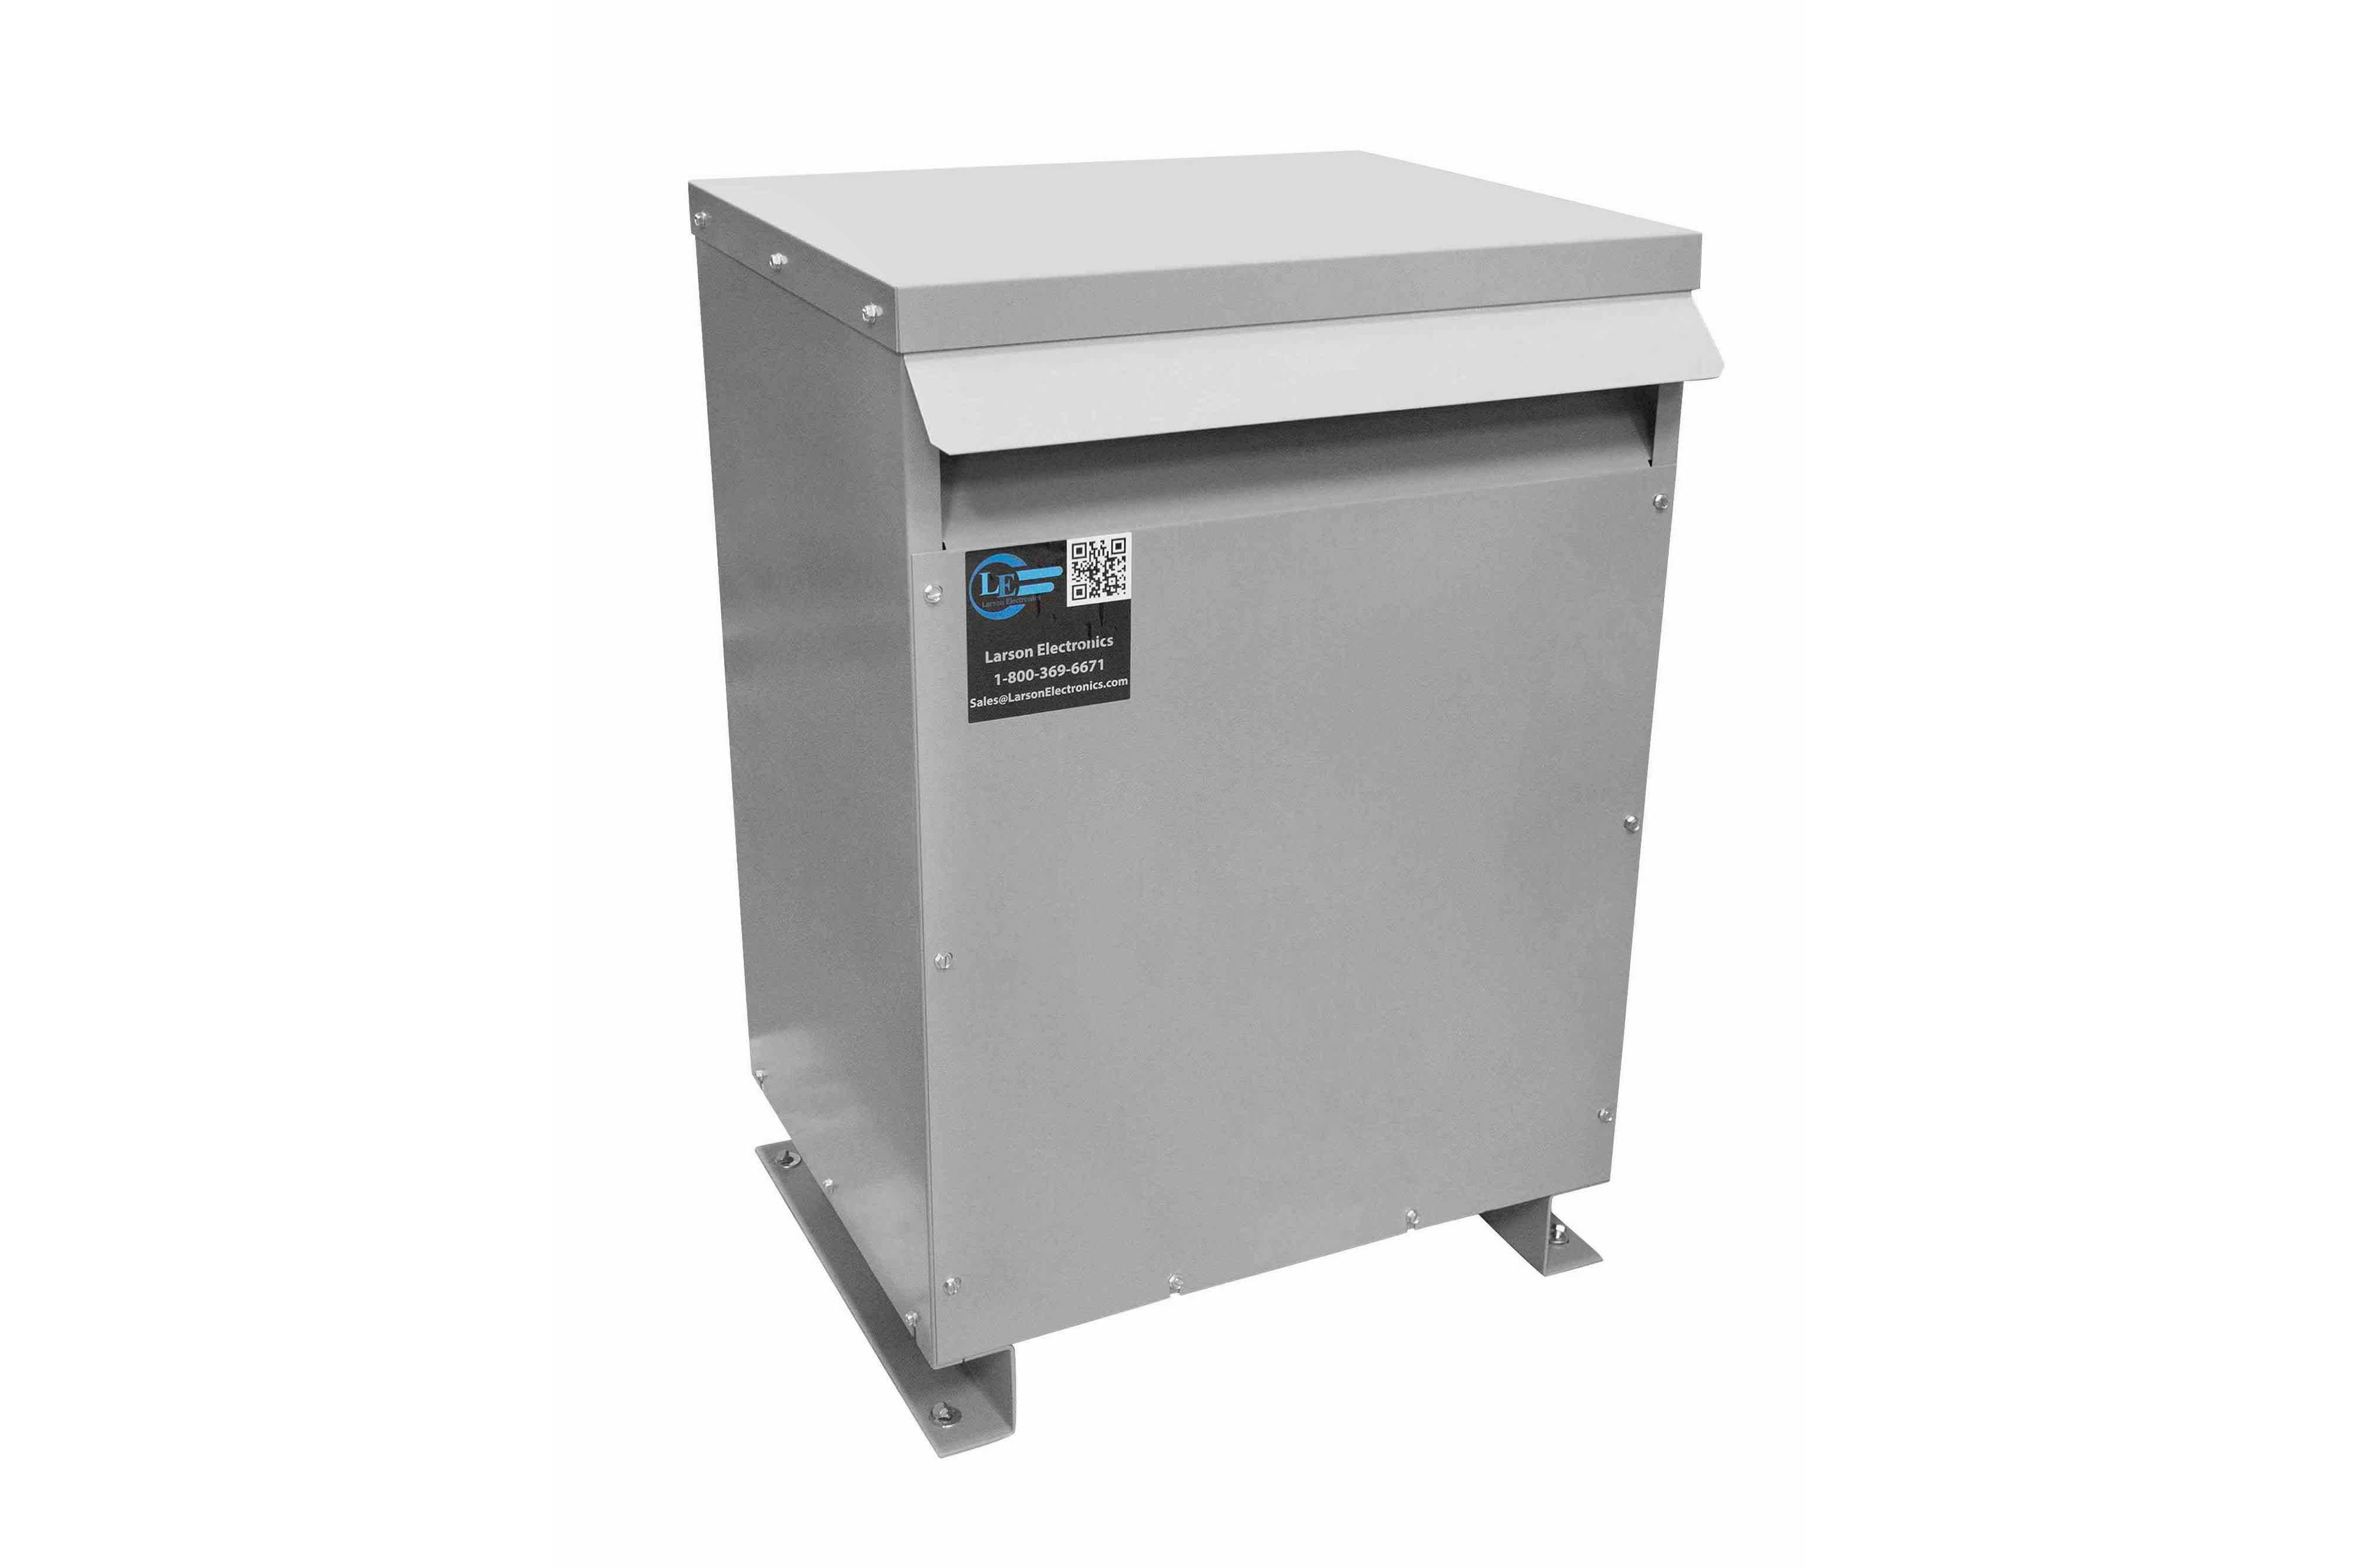 137.5 kVA 3PH Isolation Transformer, 575V Wye Primary, 400V Delta Secondary, N3R, Ventilated, 60 Hz